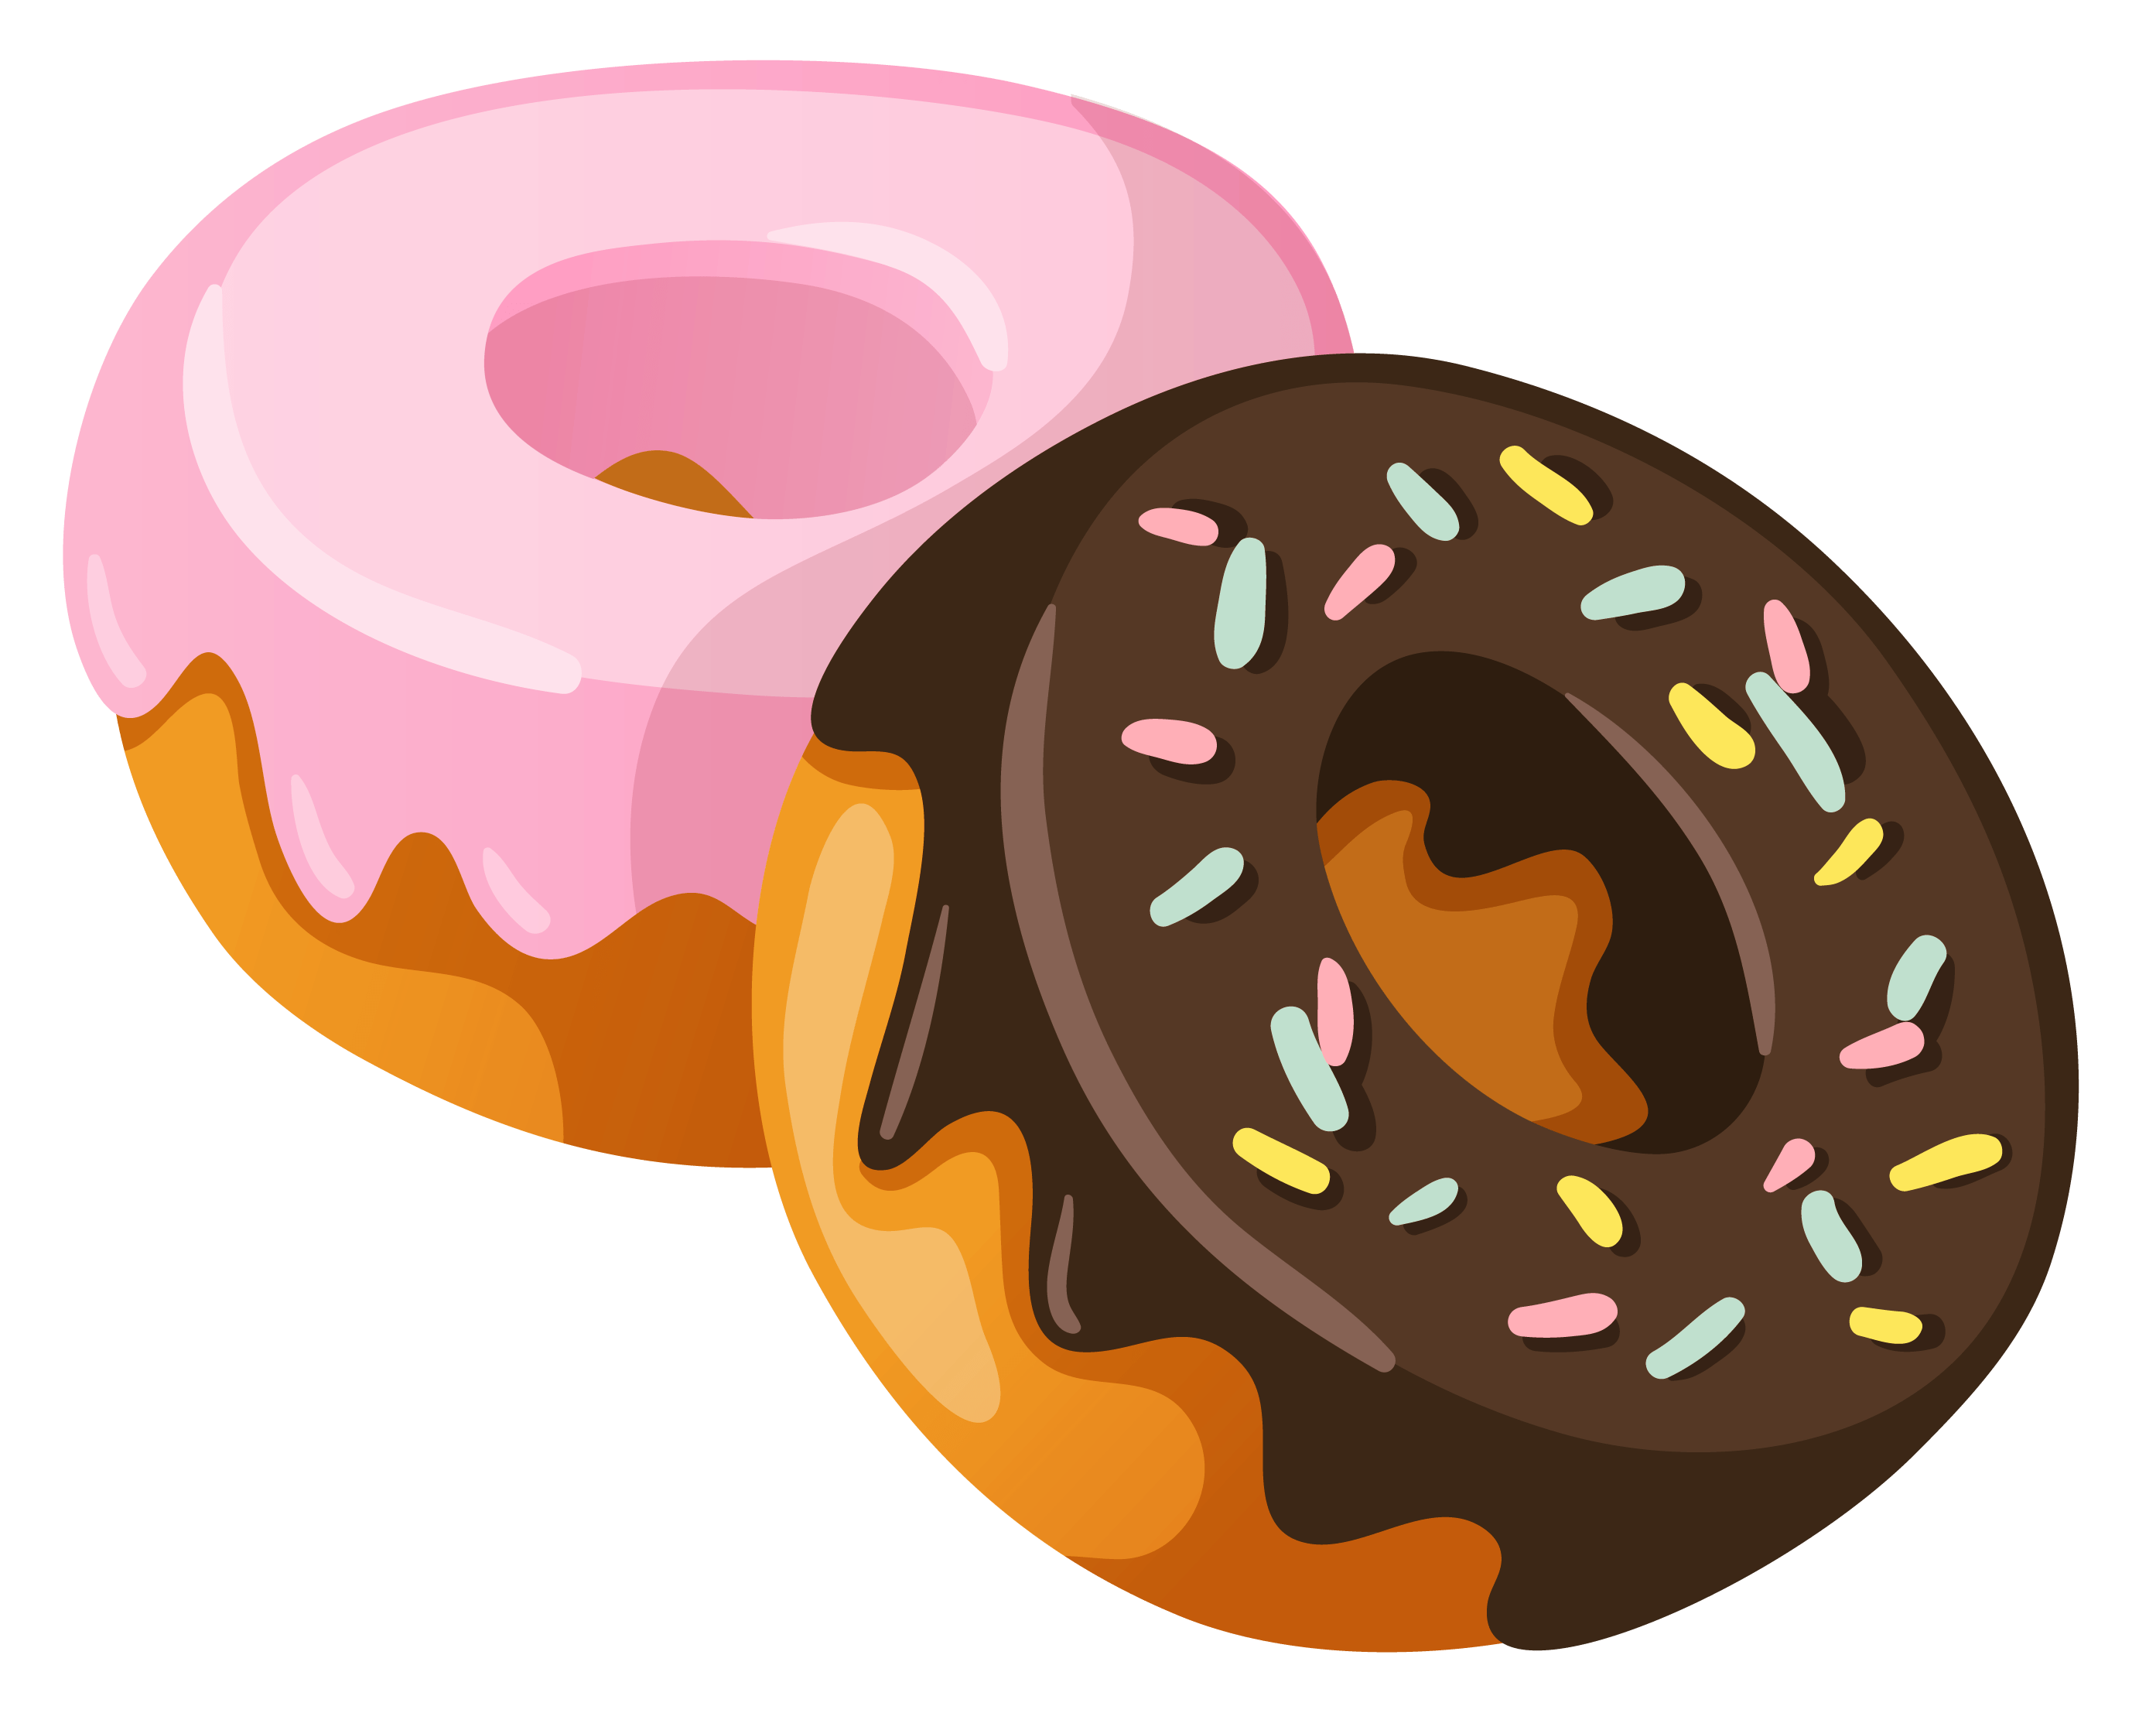 donuts clipart transparent png stickpng rh stickpng com donut clip art vector donut clip art images